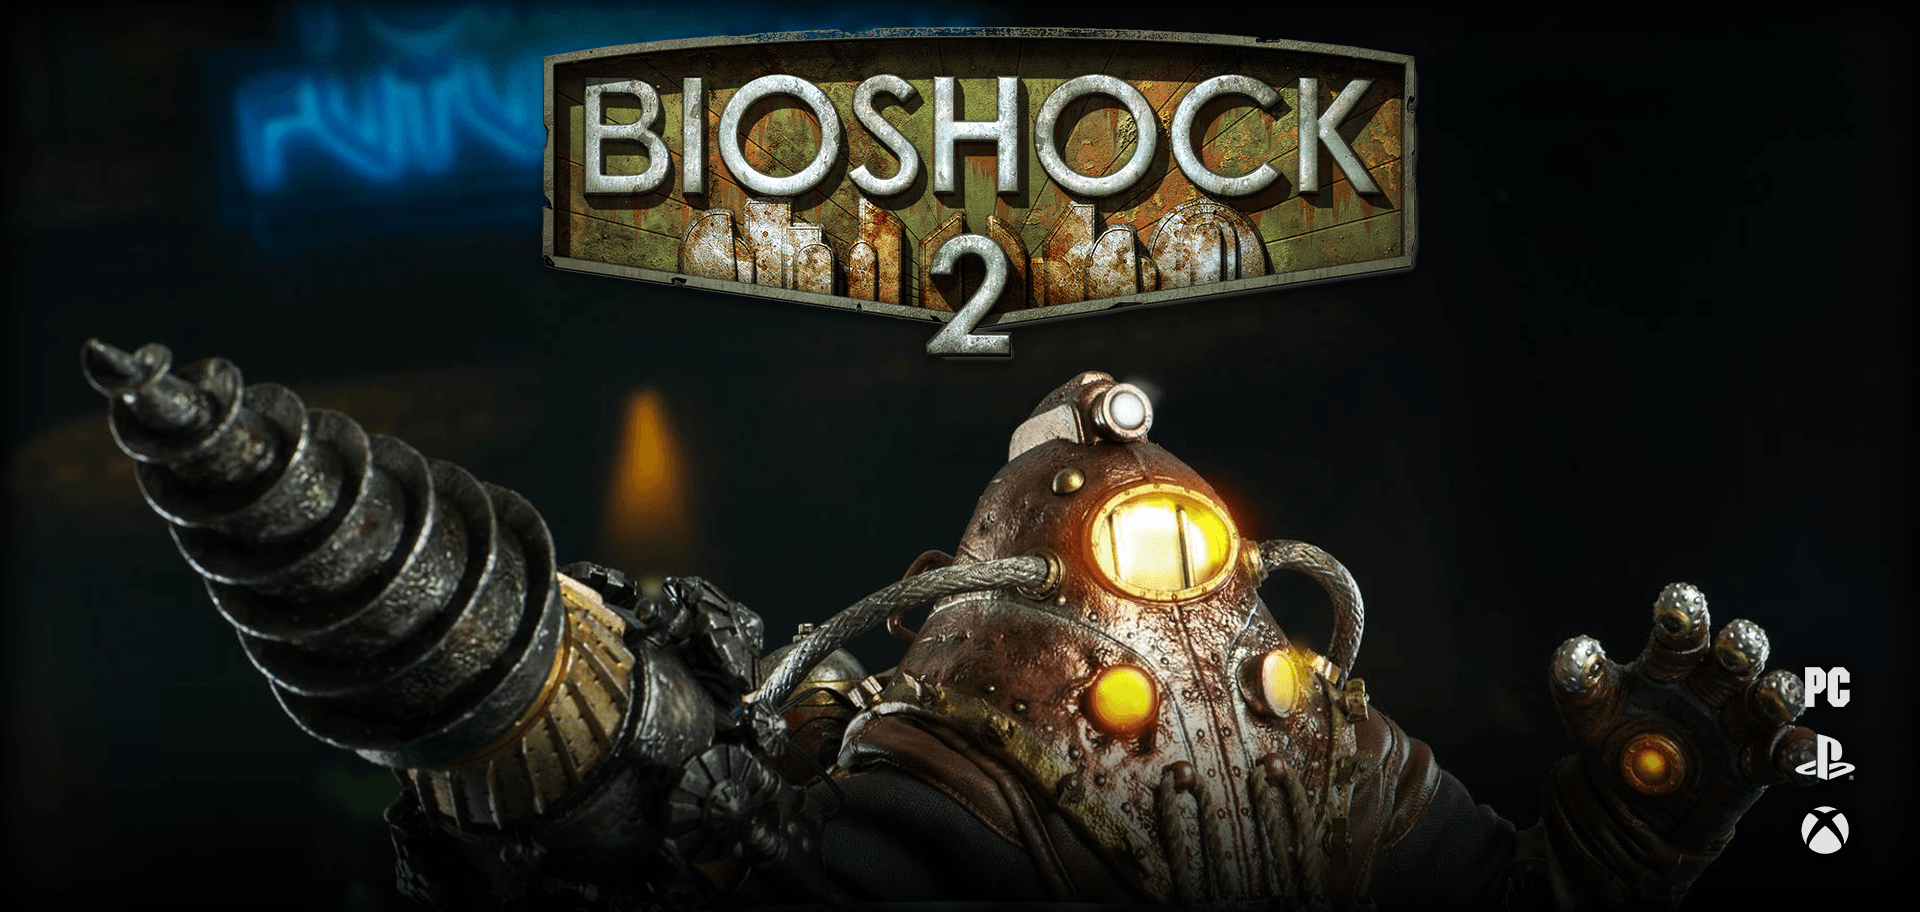 BSG_1109_BIOSHOCK2_PC-compressor